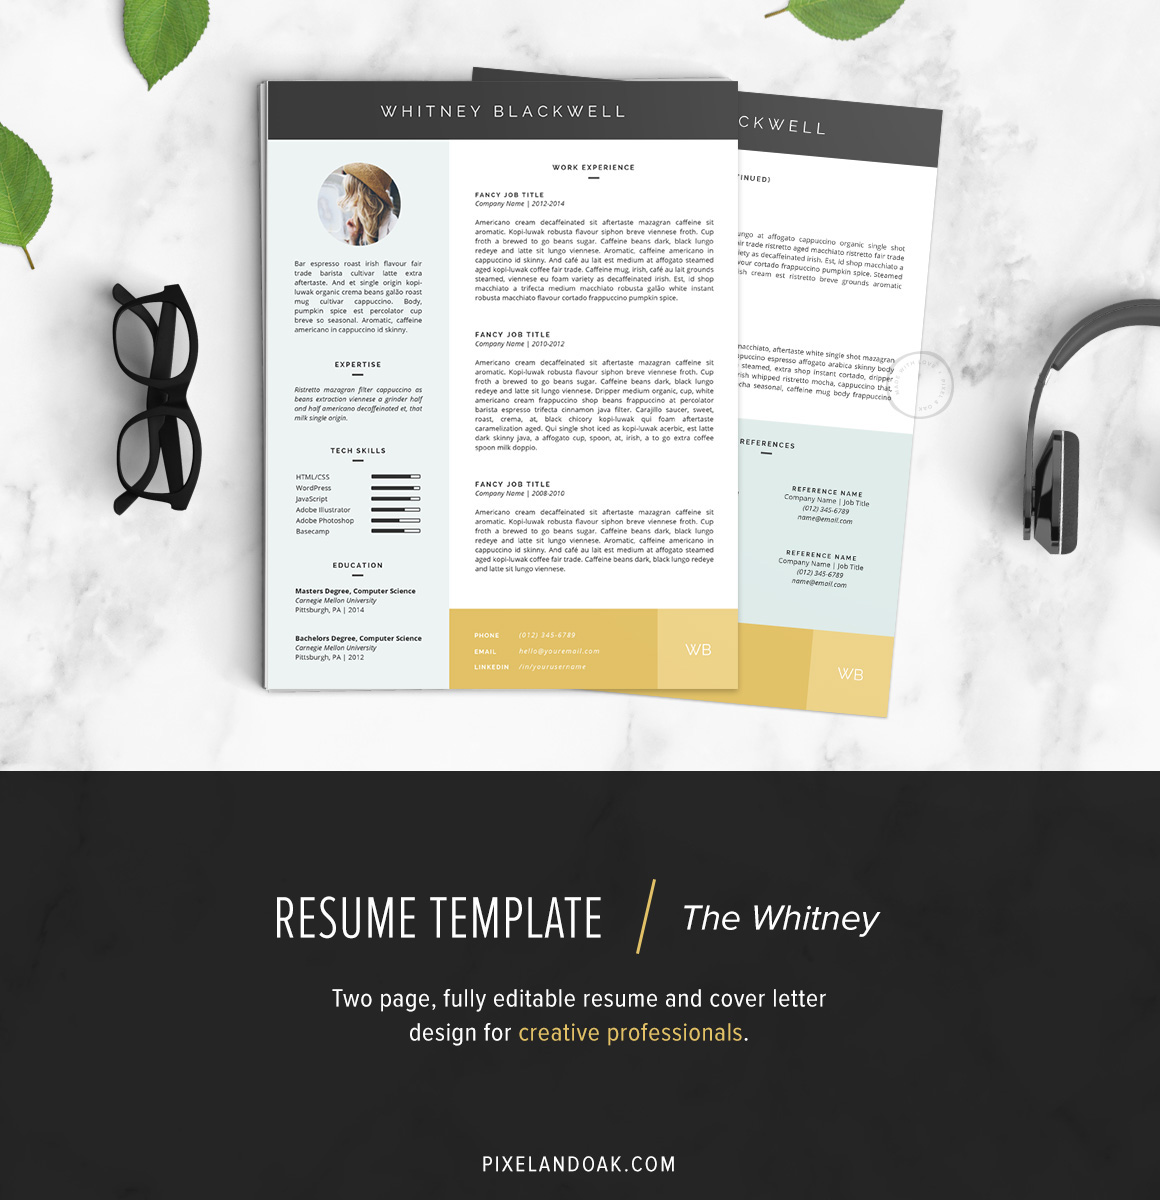 Resume & Cover Letter Template | The Whitney on Behance